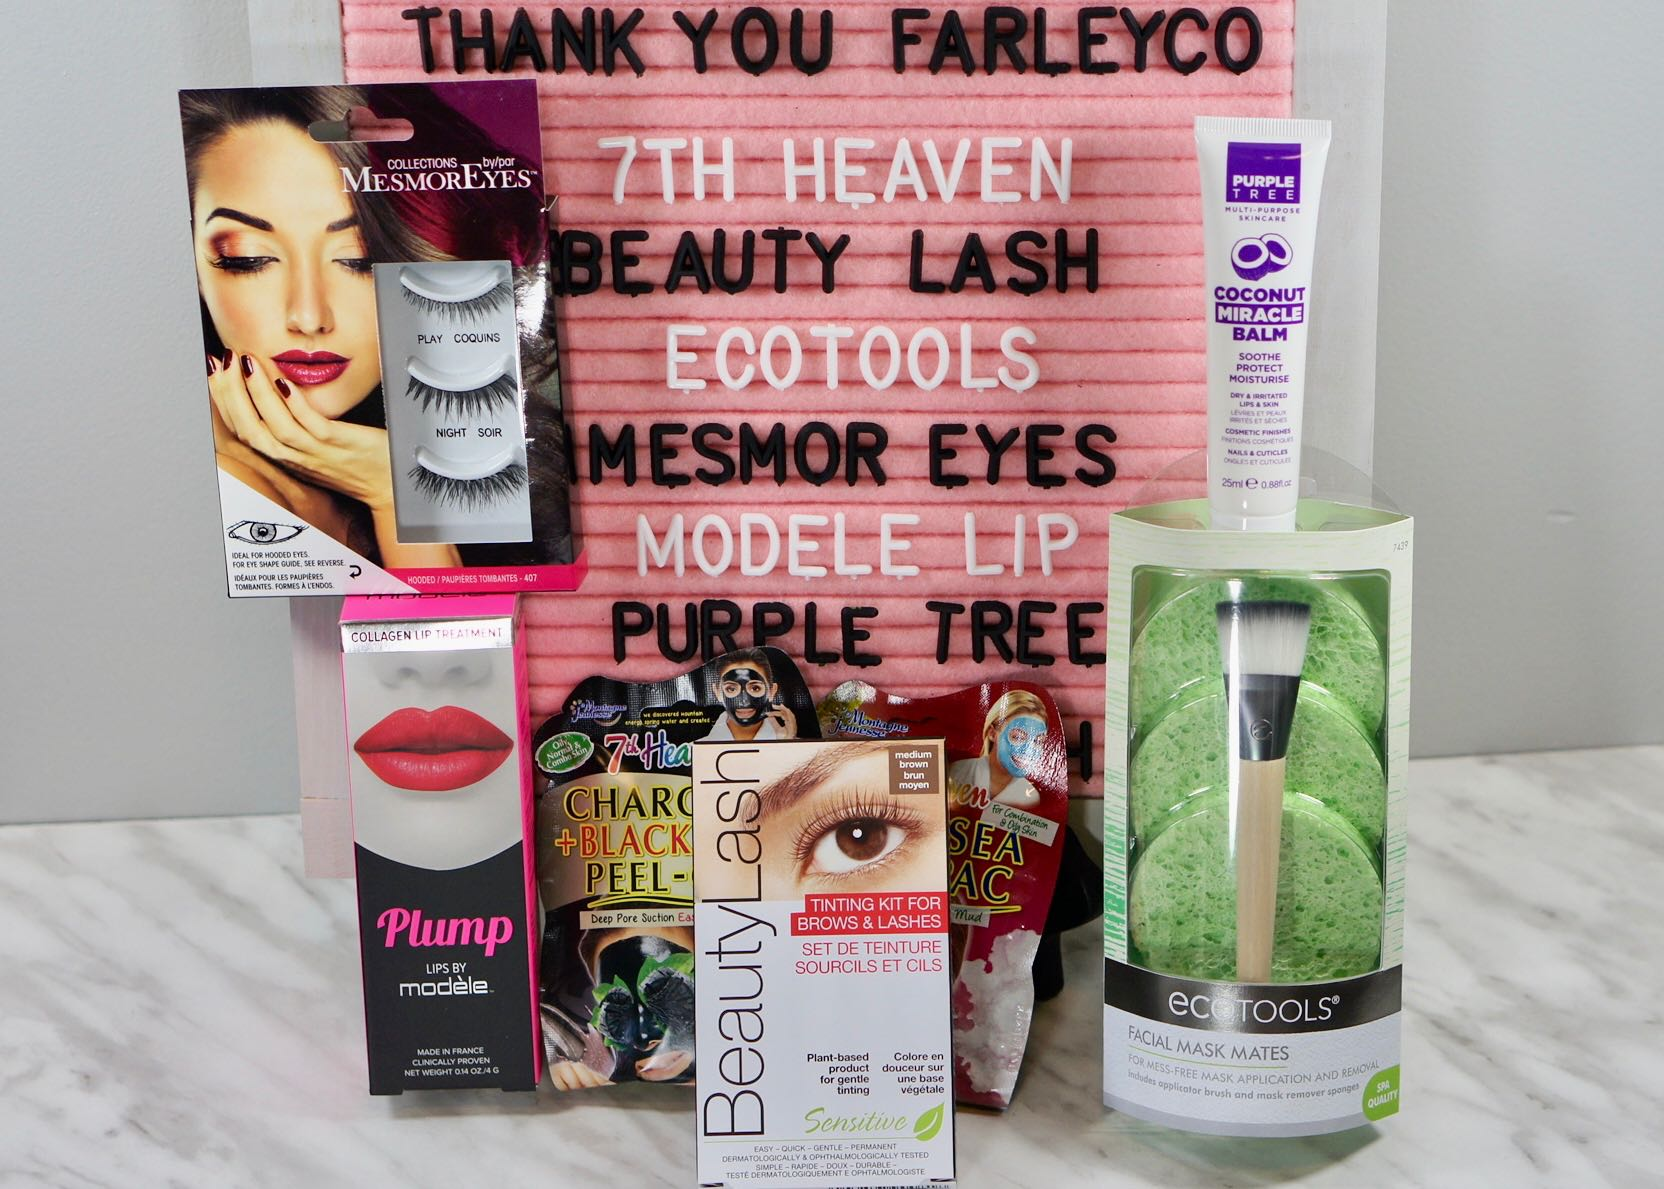 The Spring into Summer box from Farlyco.